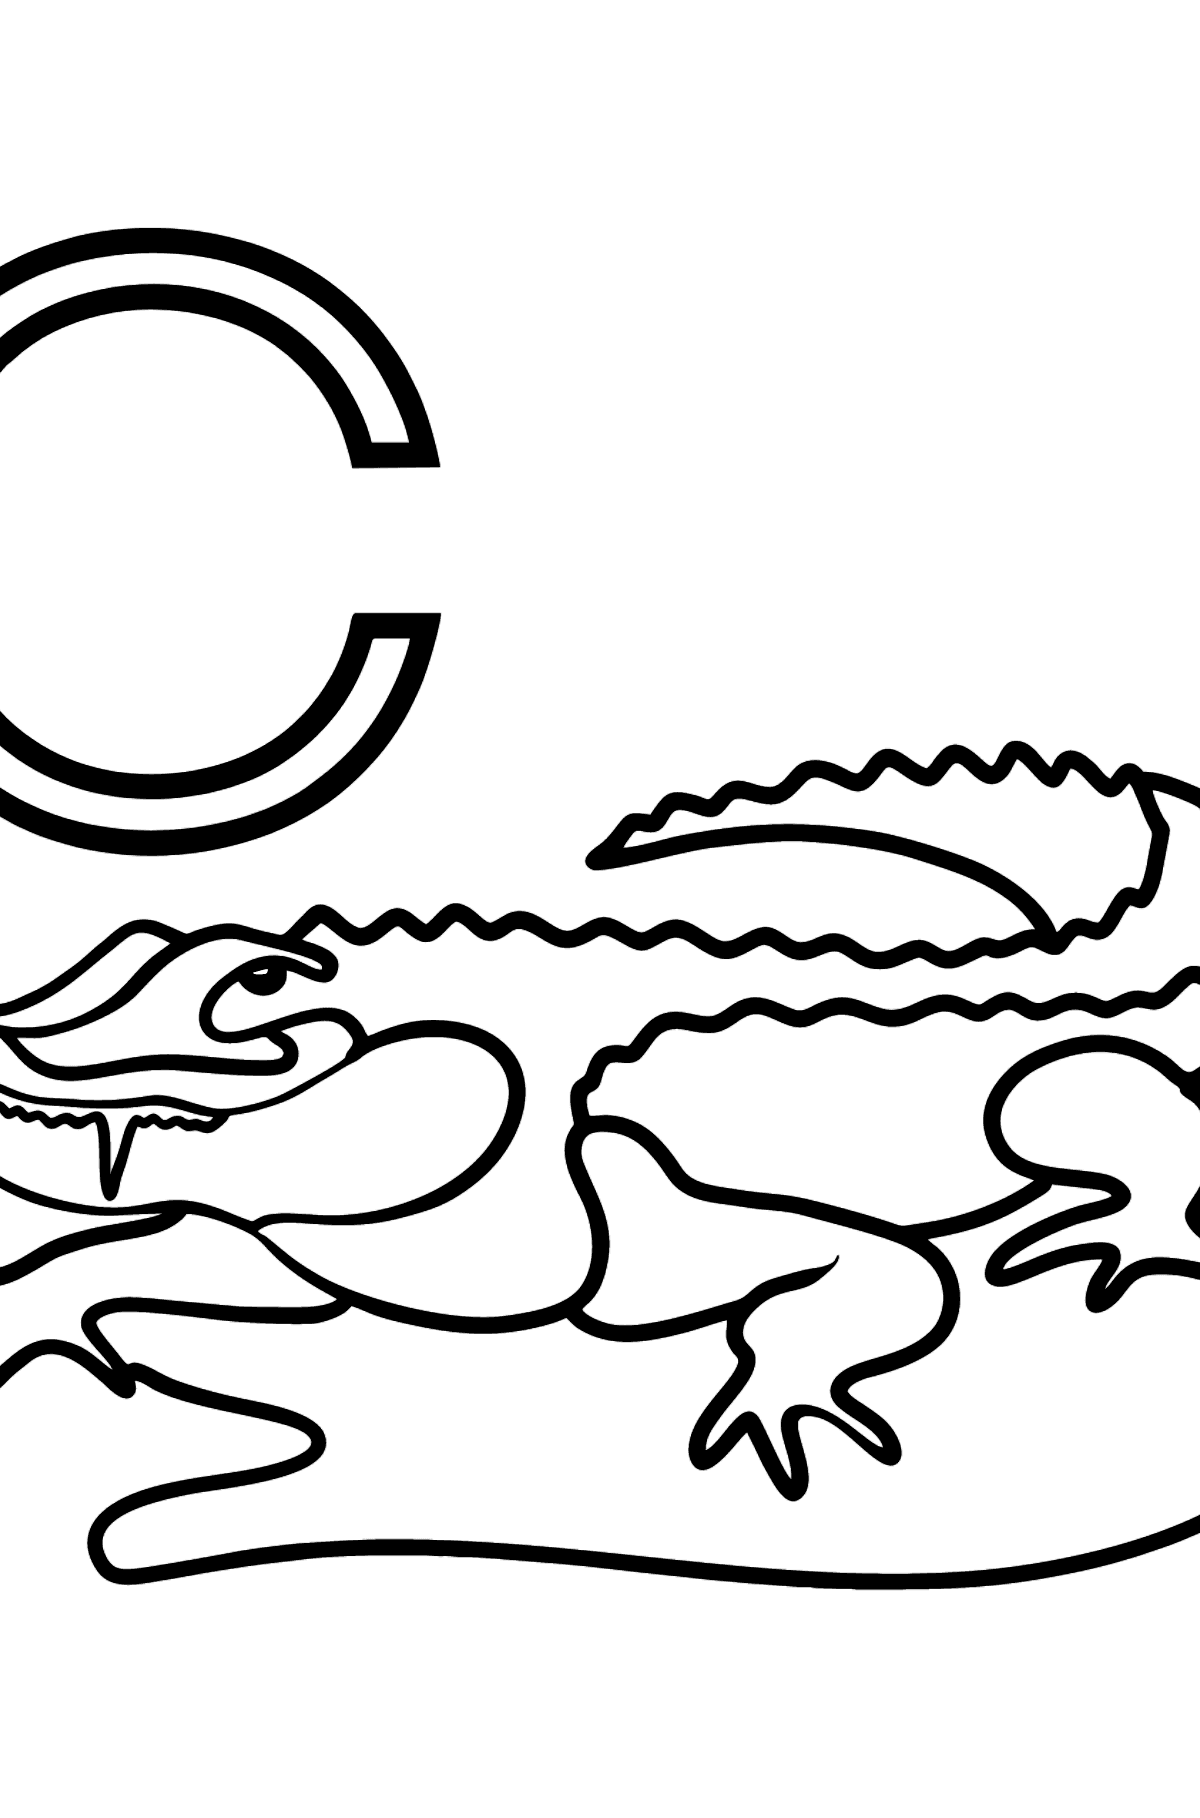 Spanish Letter C coloring pages - COCODRILO - Coloring Pages for Kids